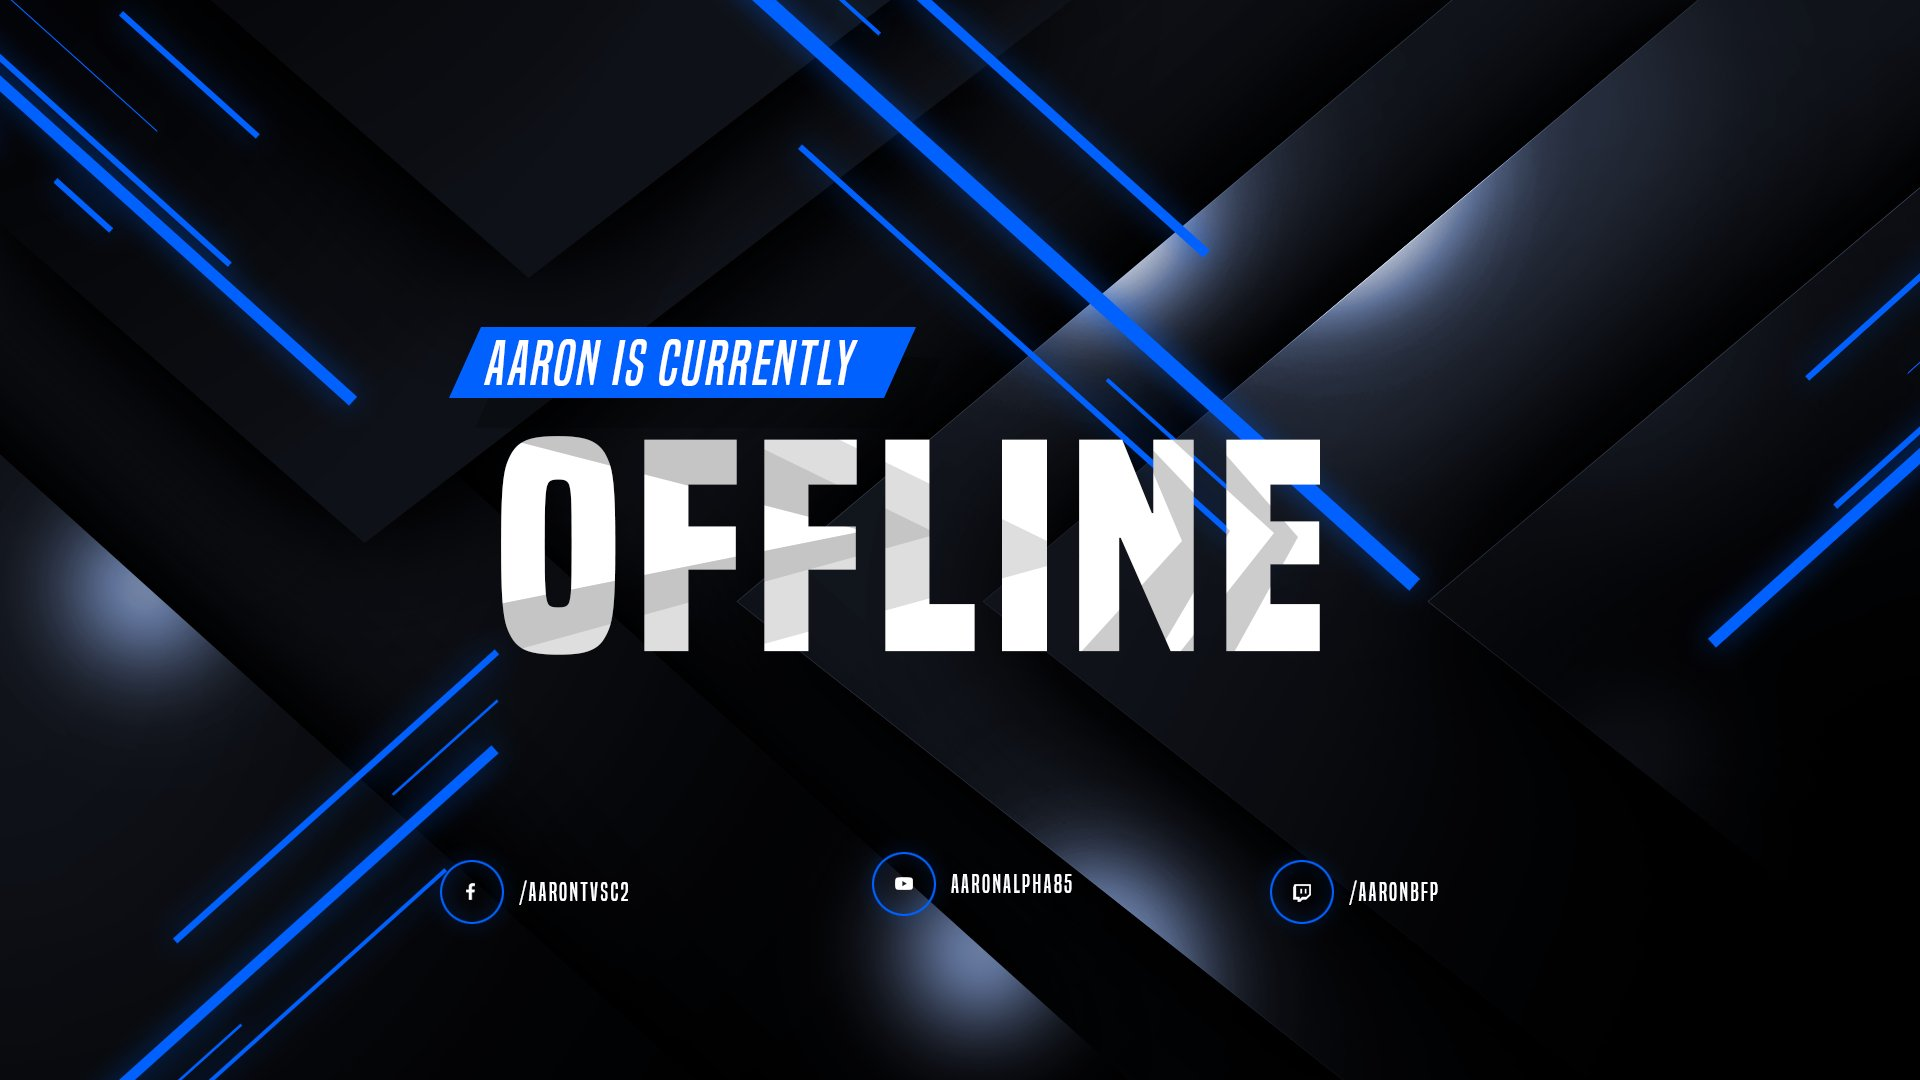 Twitch stream of AaronBFP